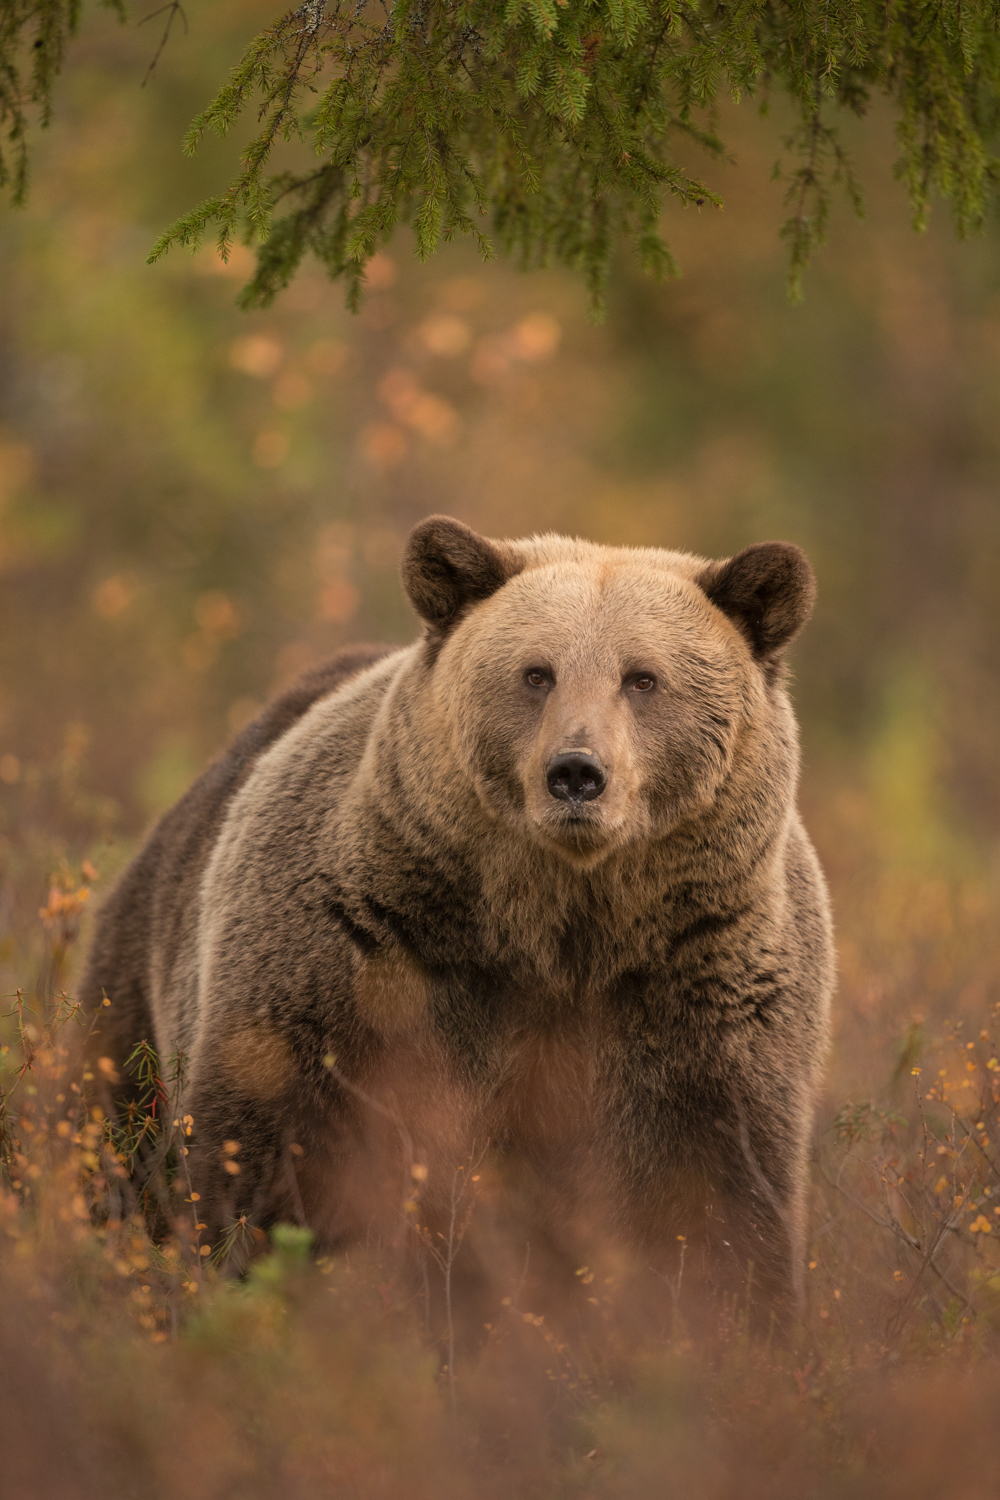 Brown_Bear_MG_0133-3.jpg